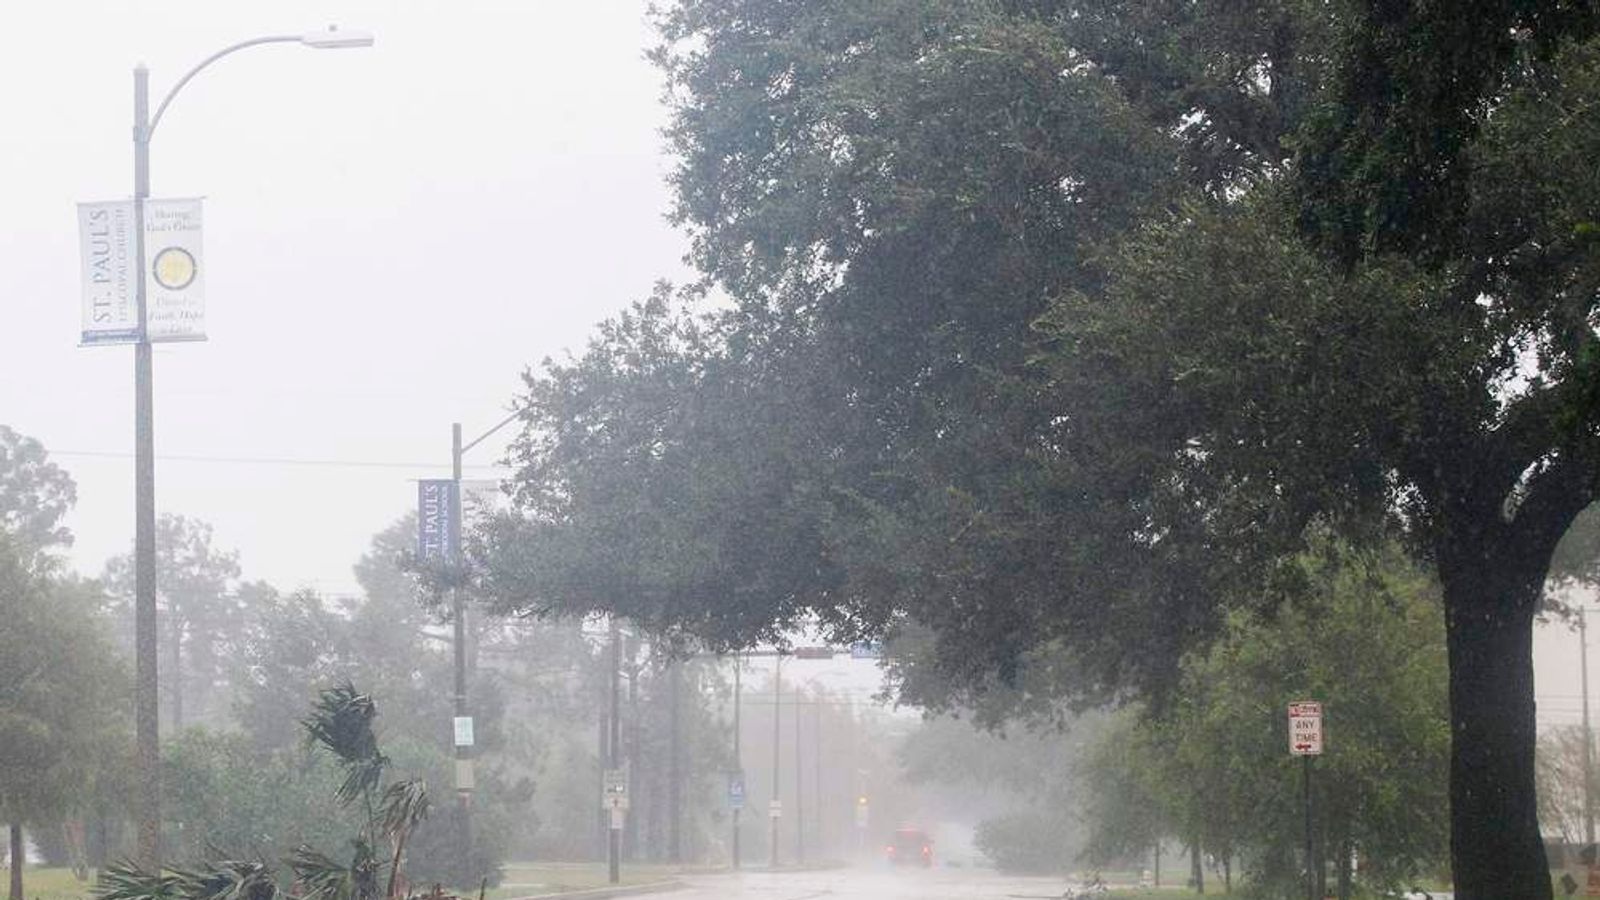 An uprooted tree blocks a road as Hurricane Isaac hits New Orleans.